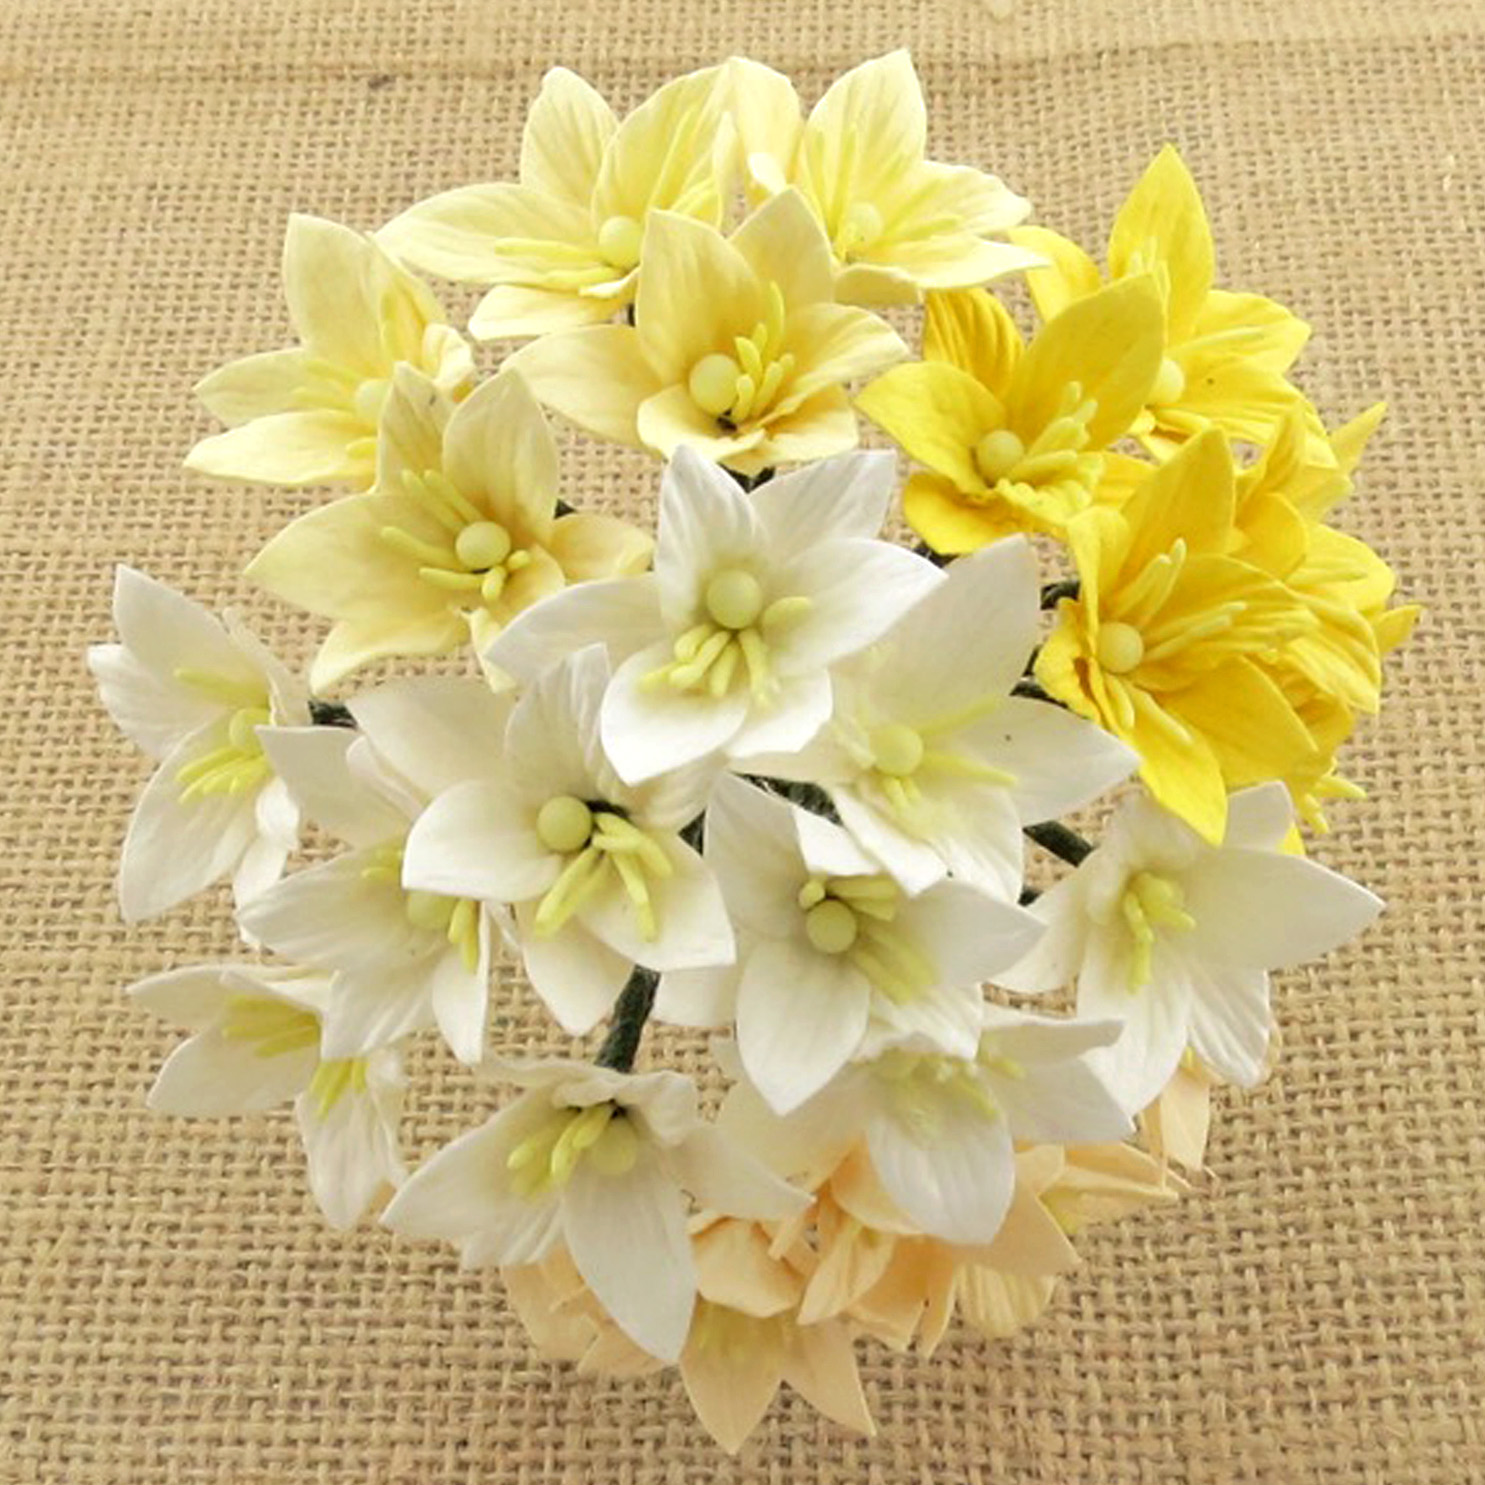 Wild orchids craft -50 MIXED WHITE/CREAM MULBERRY PAPER LILY FLOWERS - 5 COLOR